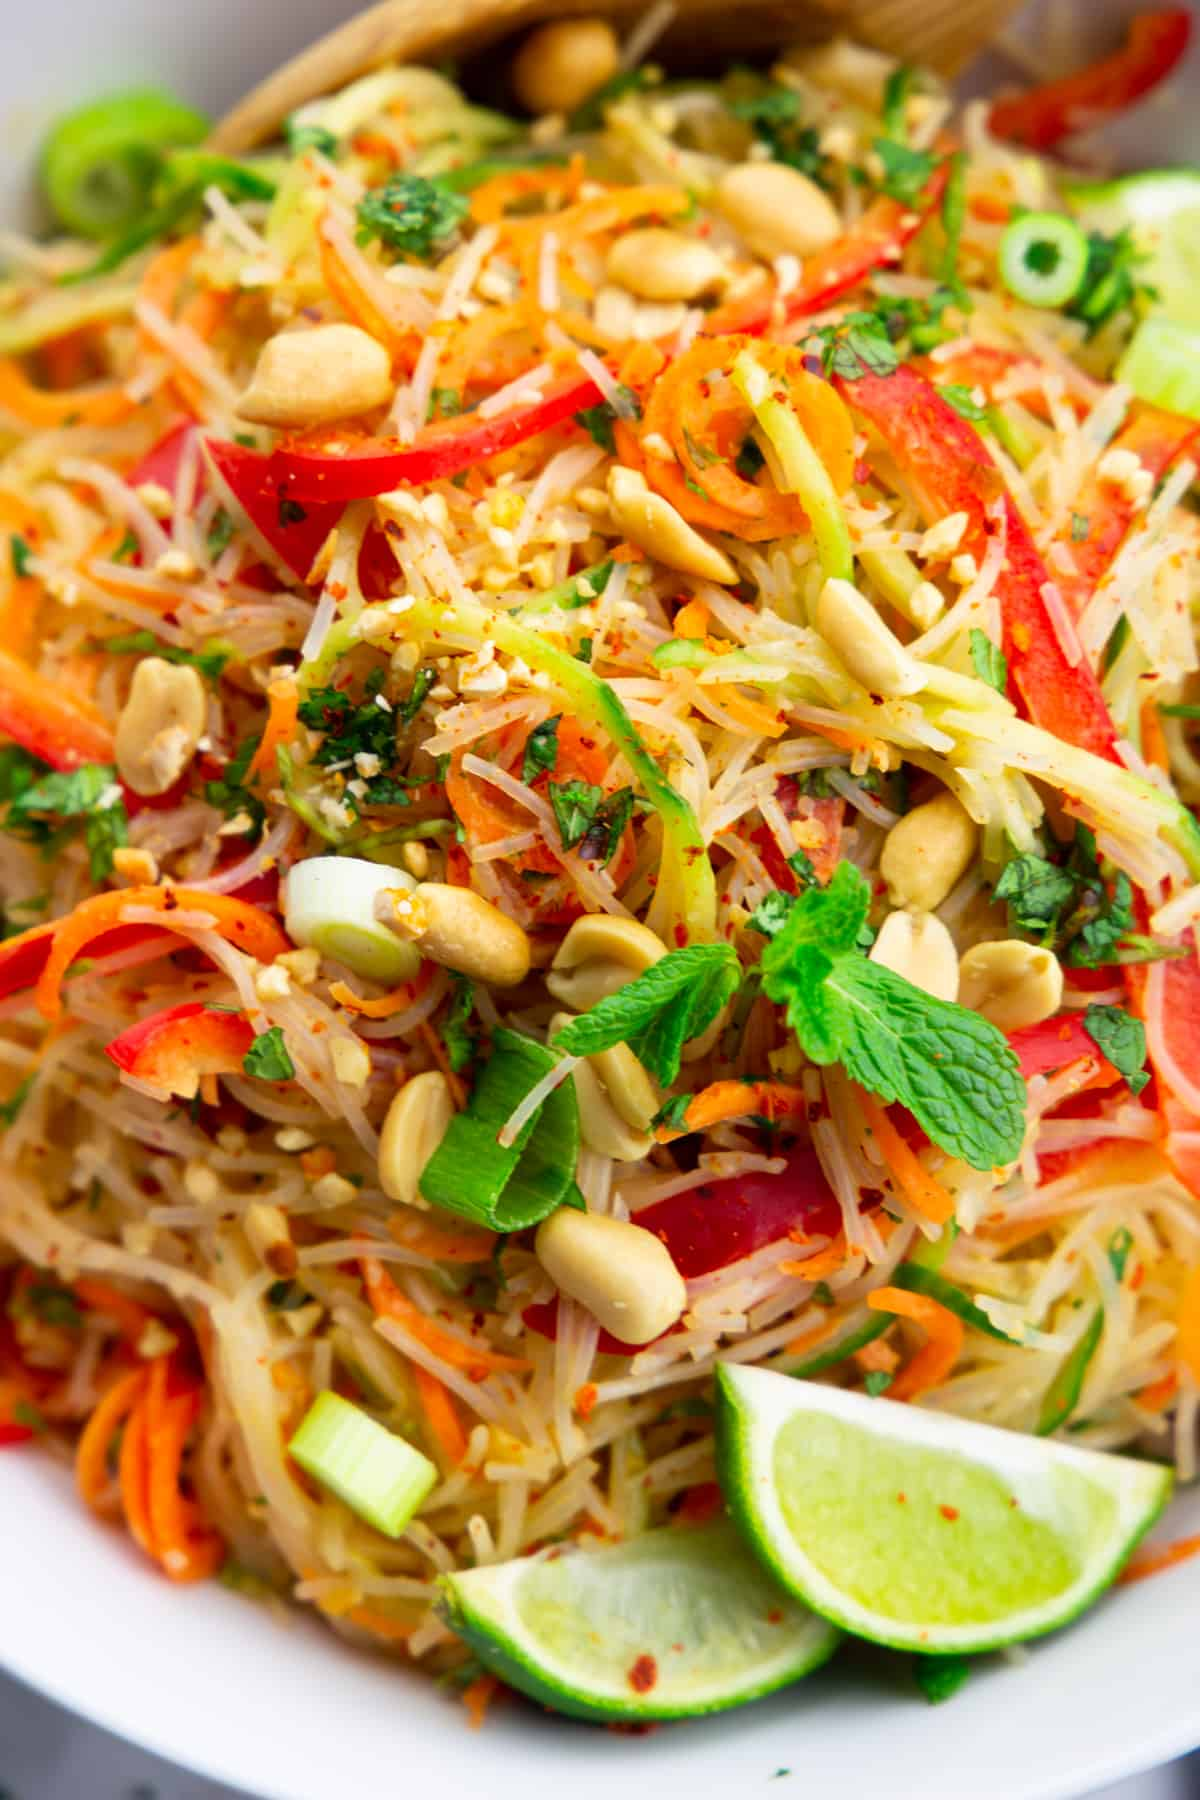 close-up photo of a glass noodle salad with cucumber, carrot, and bell pepper